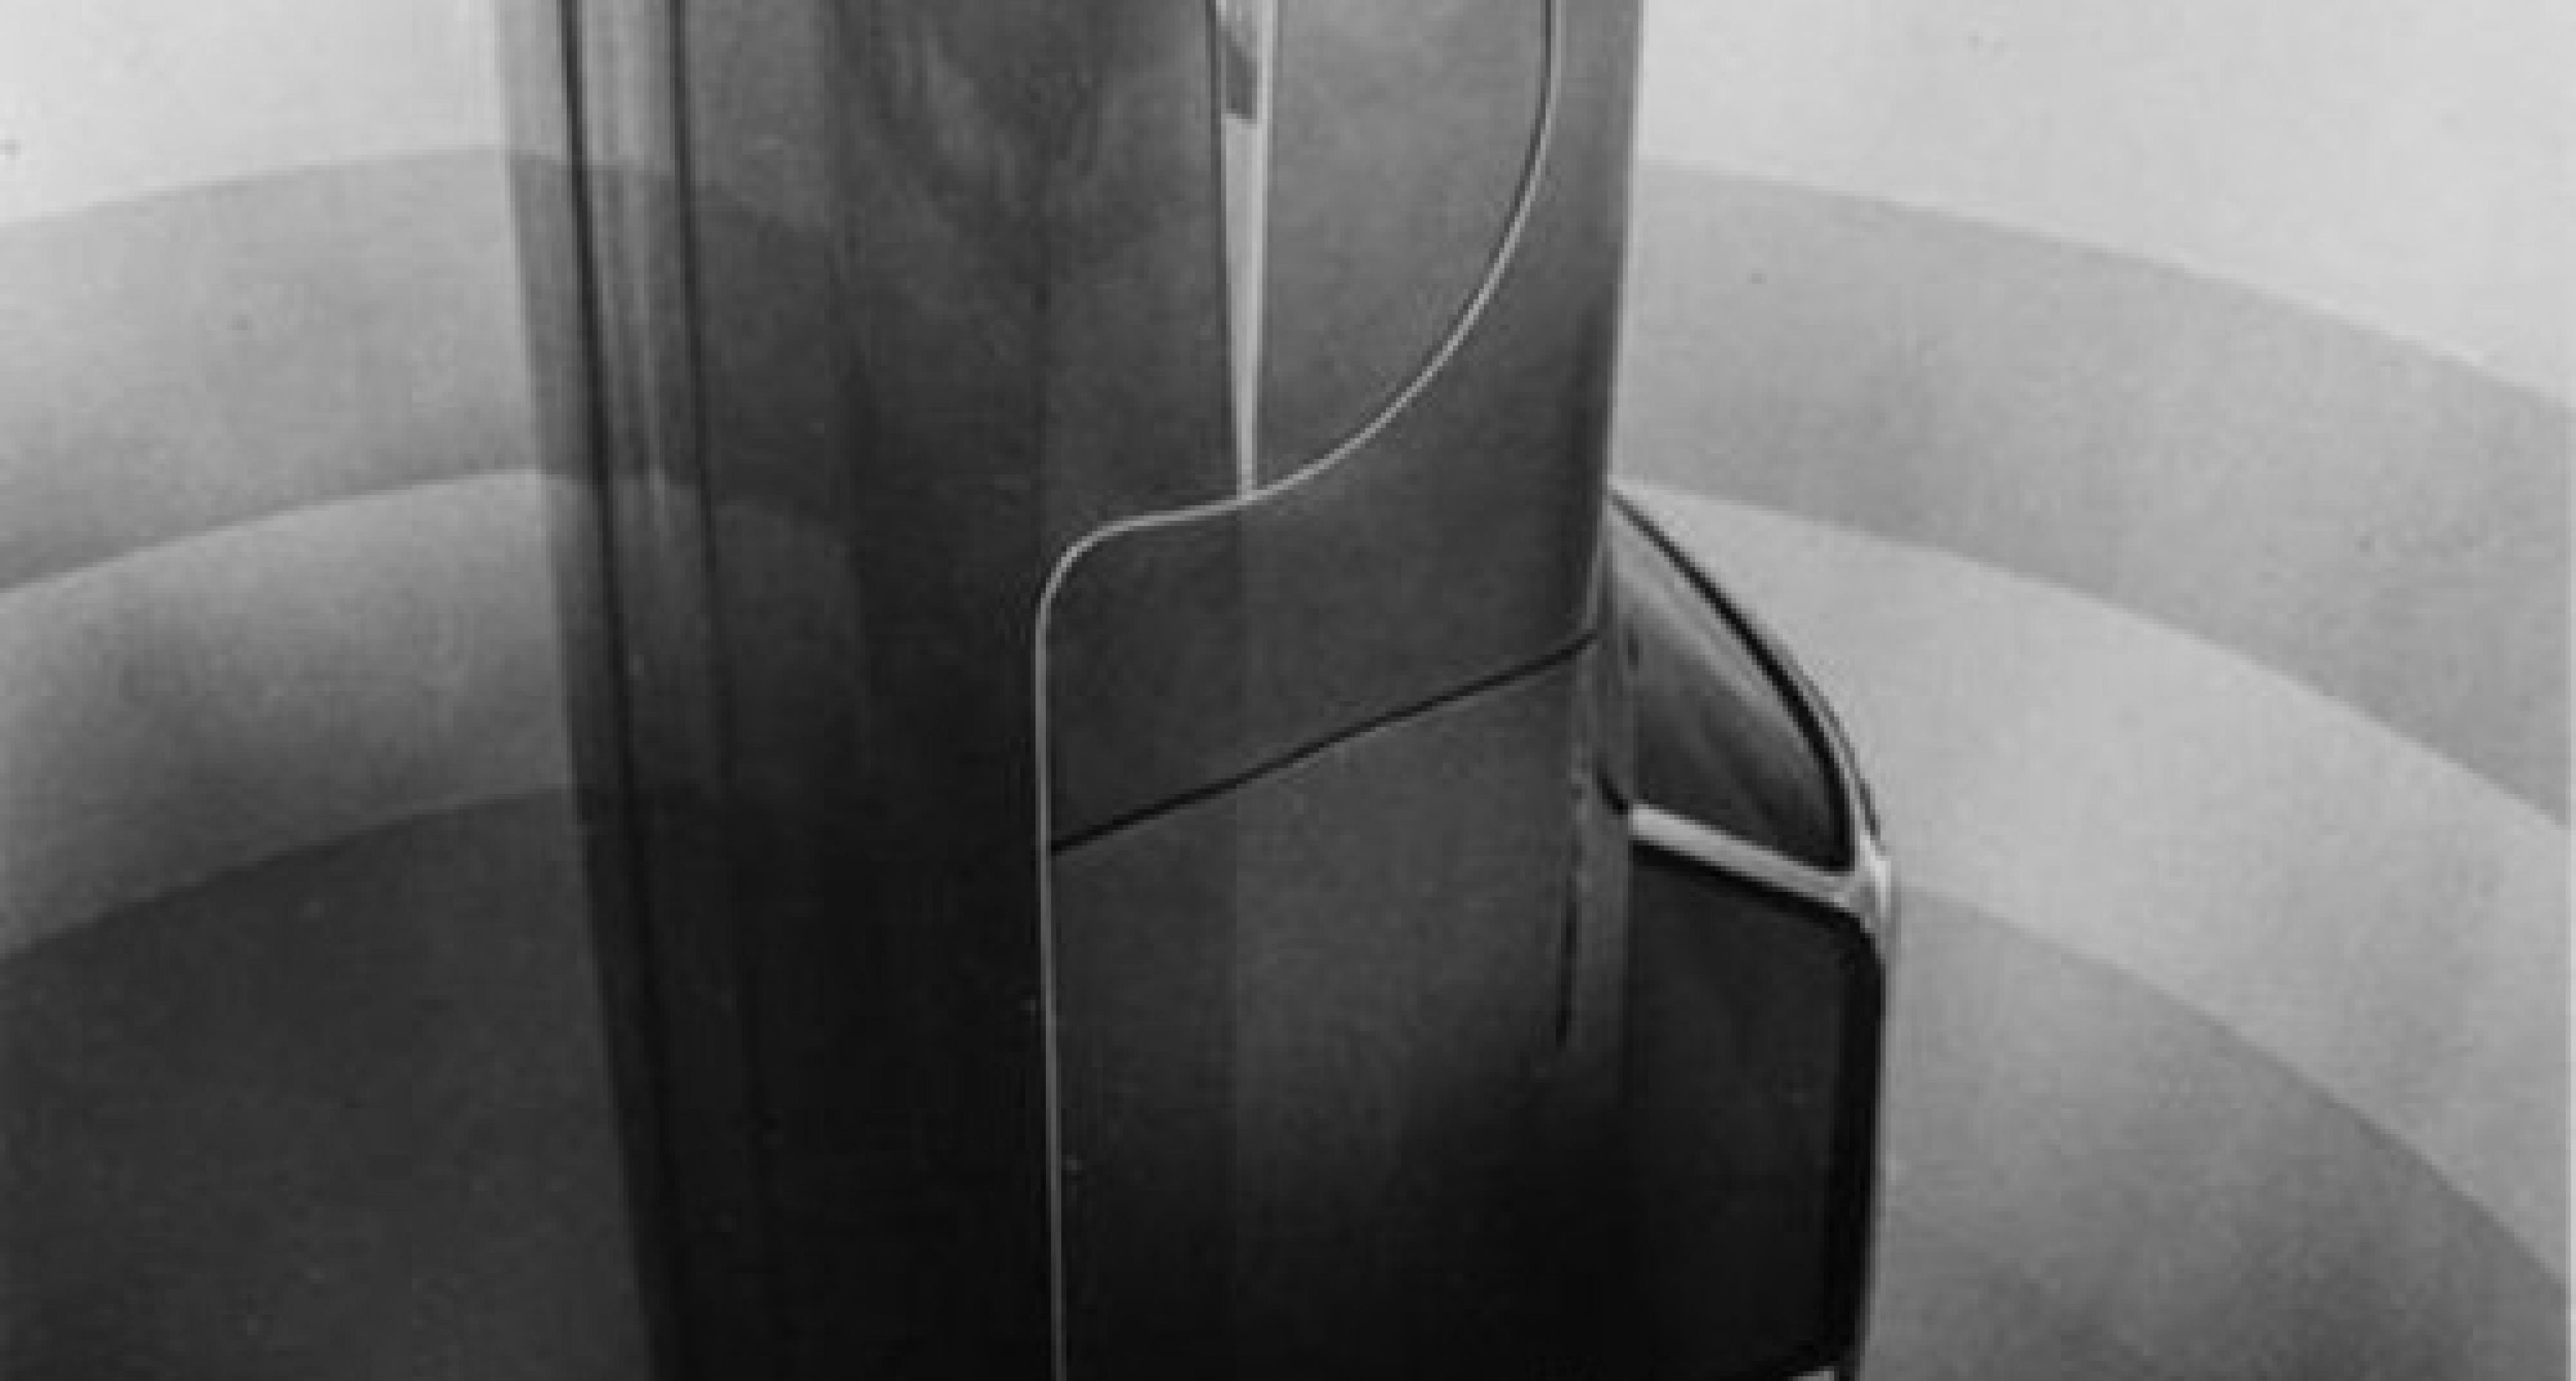 DS 19 sculpture at the Triennale di Milano, 1957